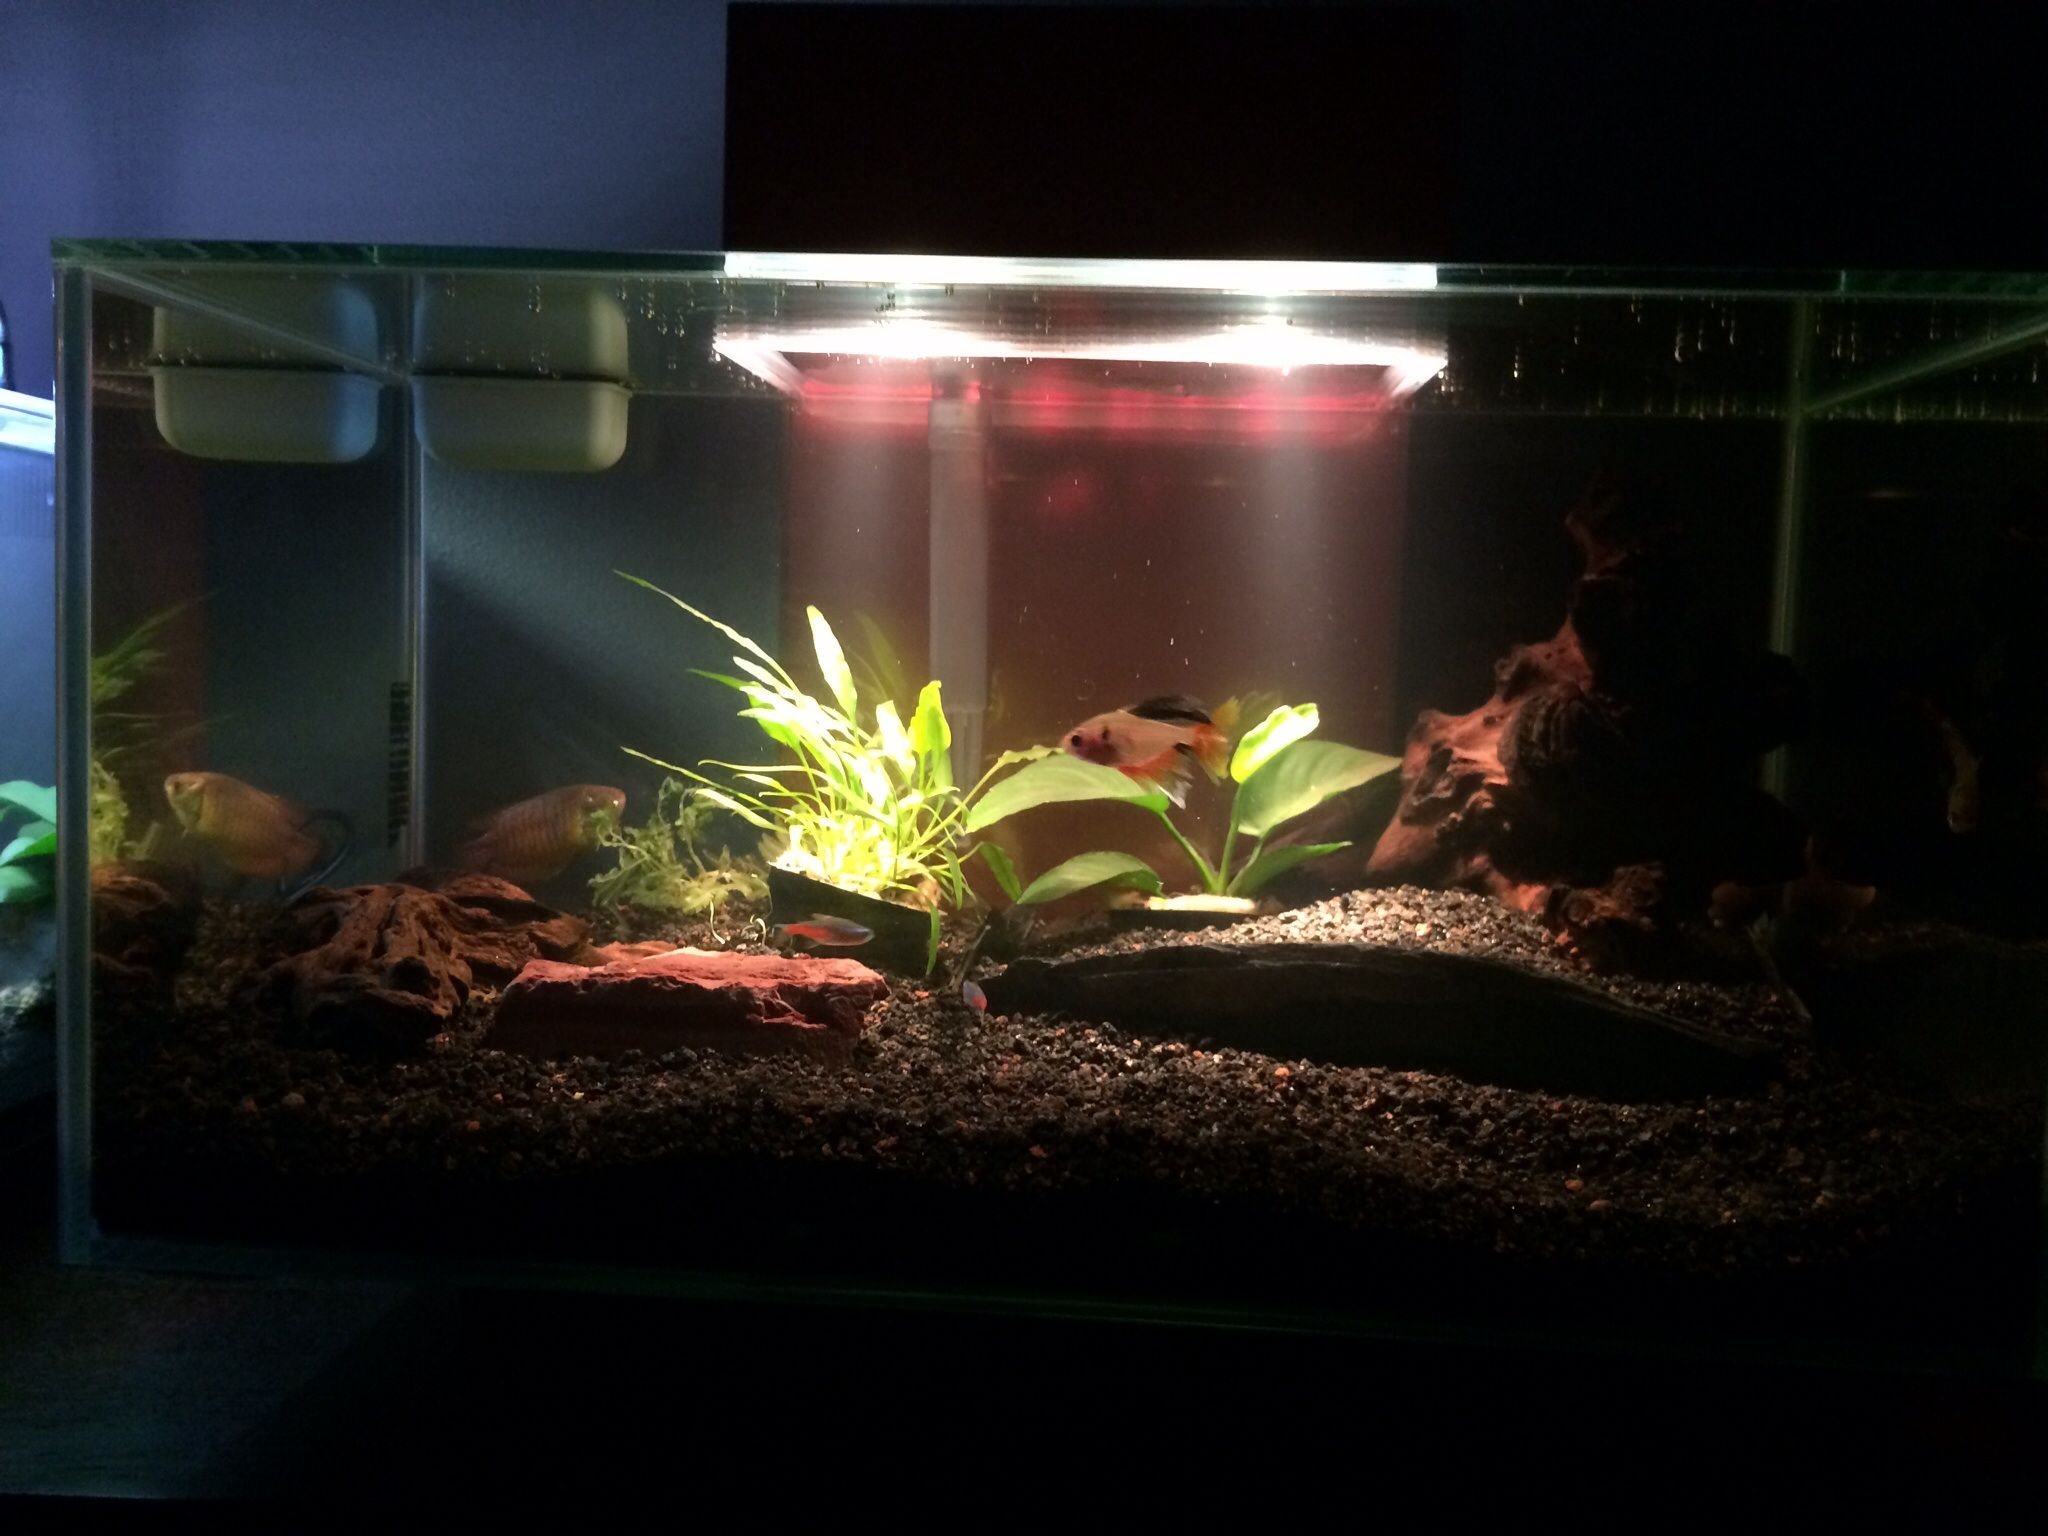 New Fluval Edge tank Need tips The Planted Tank Forum